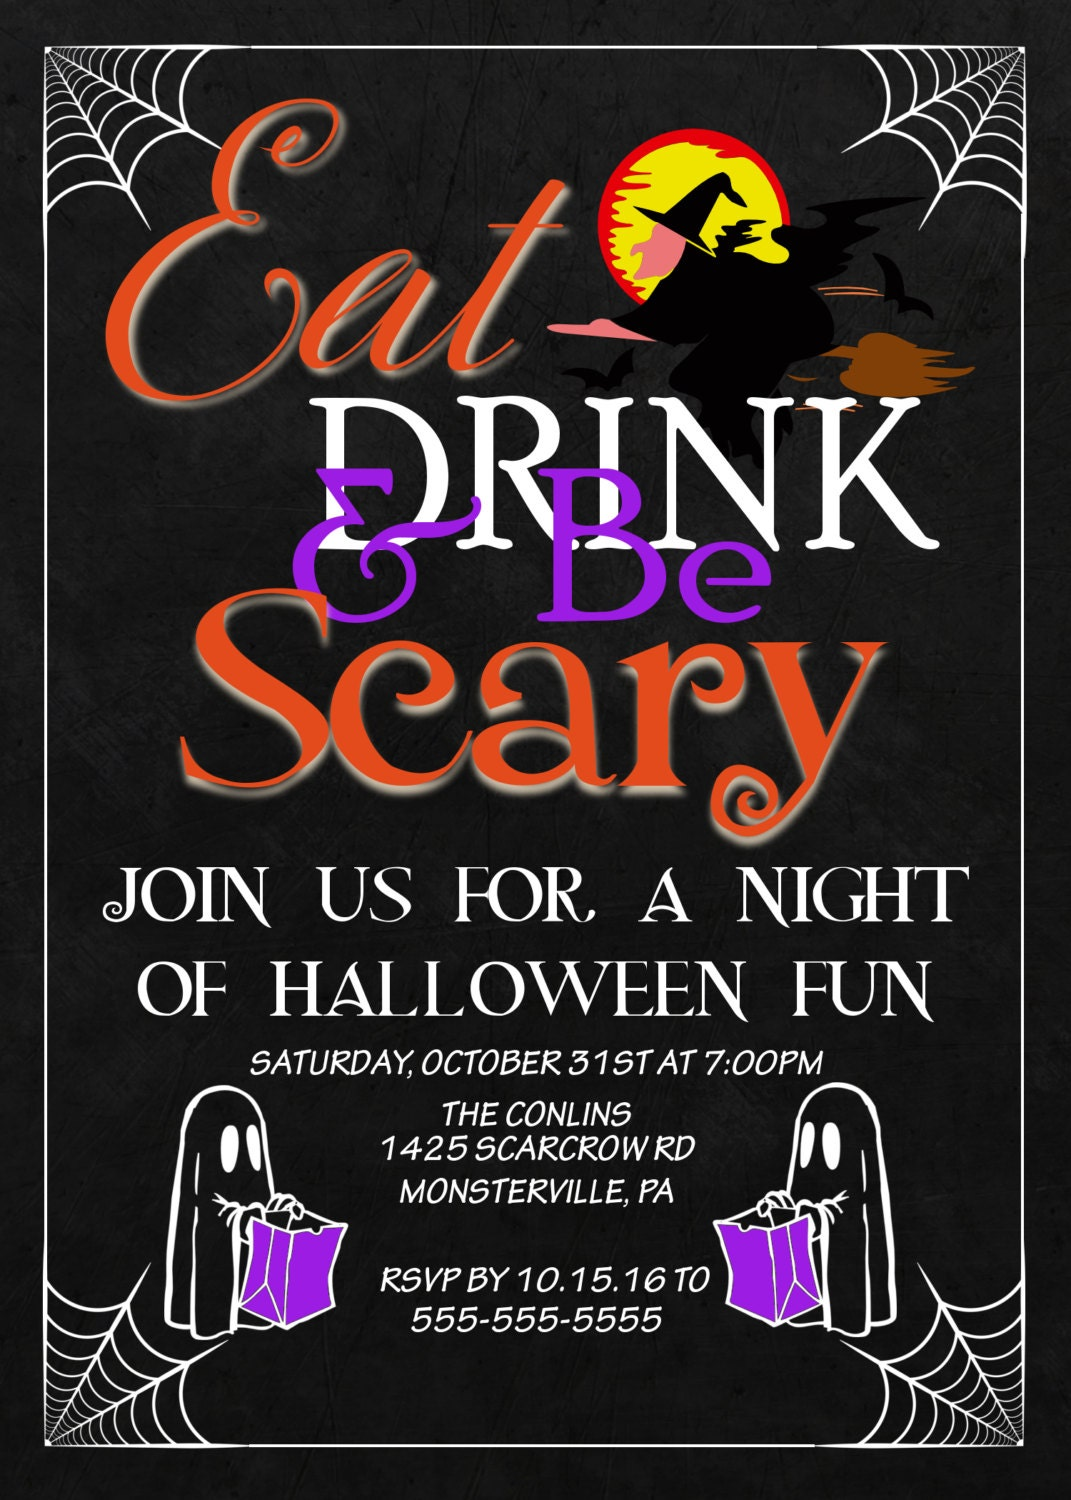 Printable Halloween Party Invitation, Halloween invitations ...